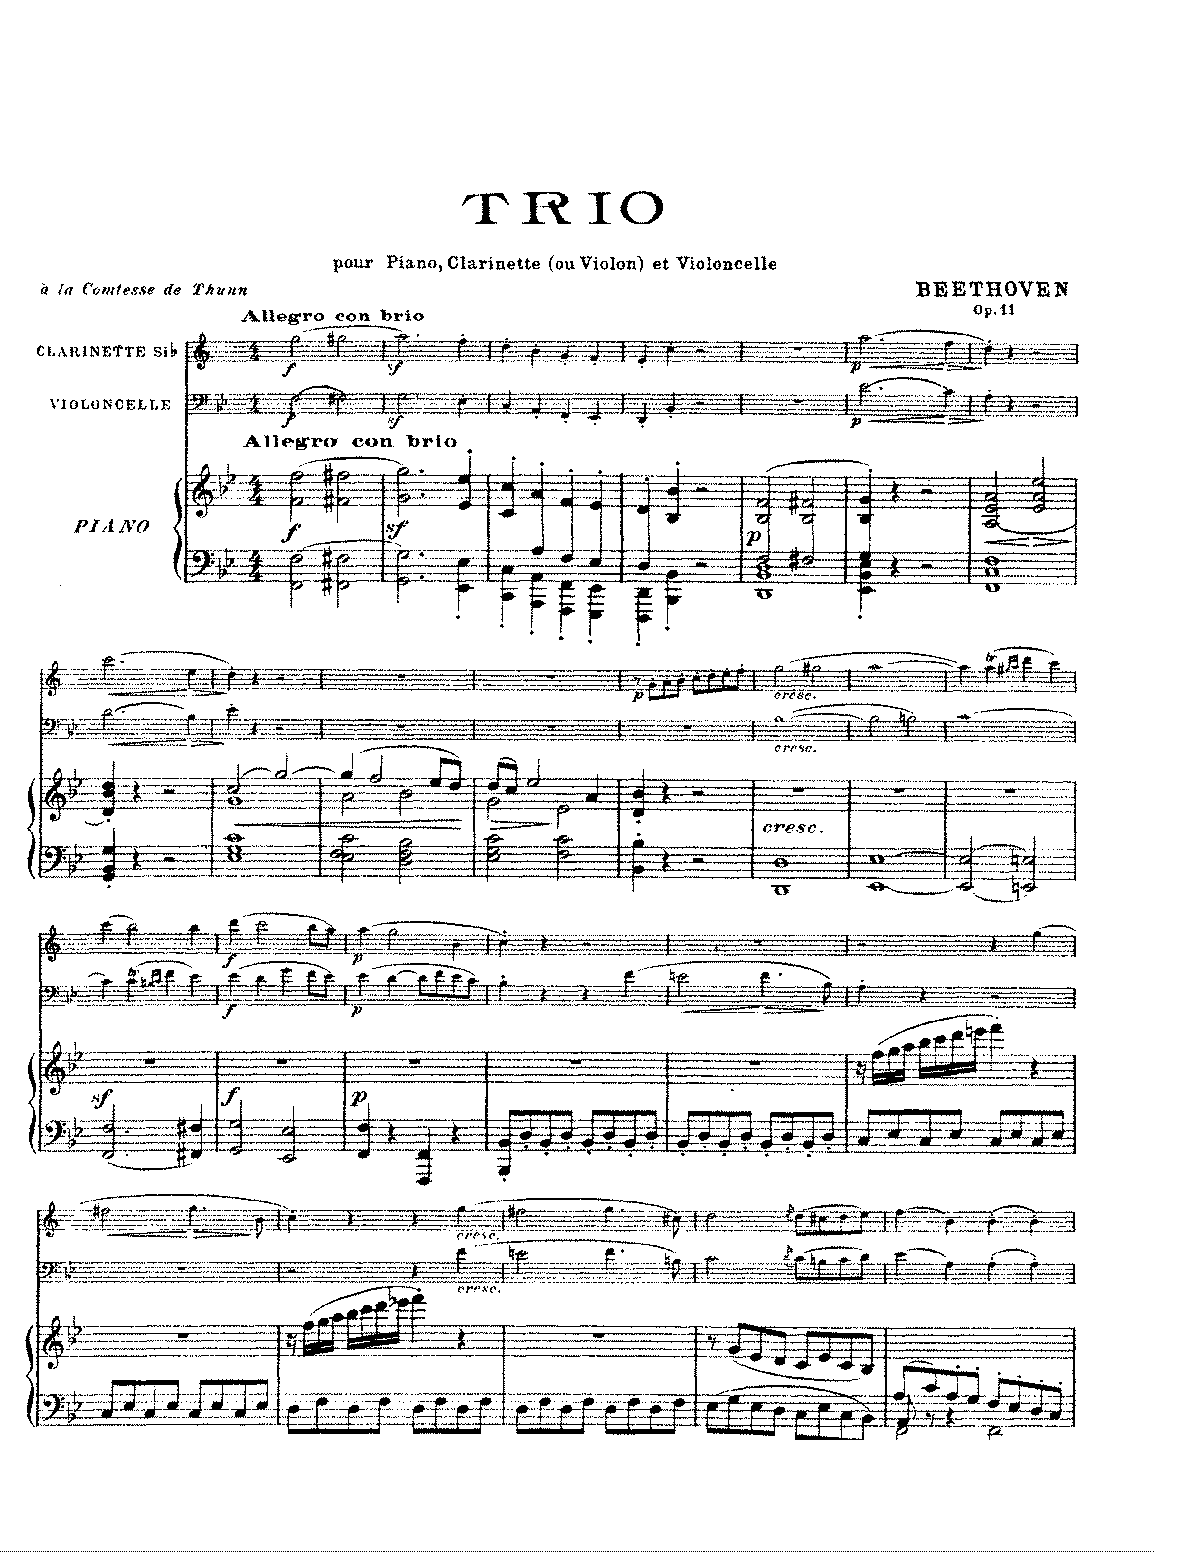 Beethoven - Piano Trio No.4 Dukas.pdf